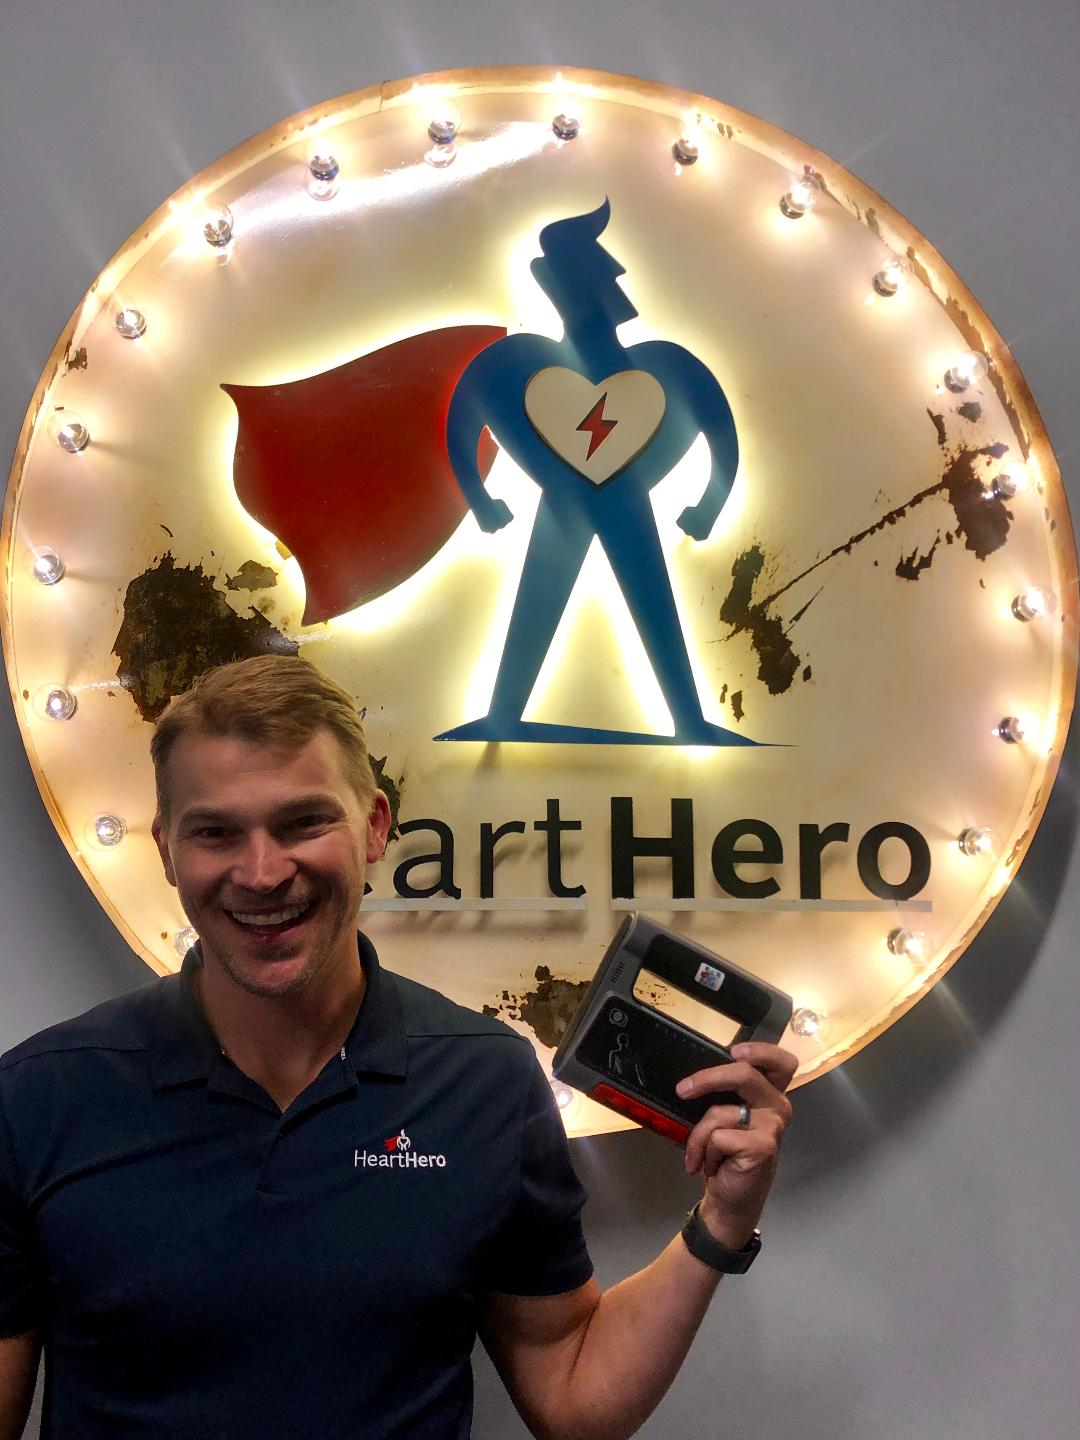 Blog post about startup HeartHero and the MedTech industry for Denver Startup Week.